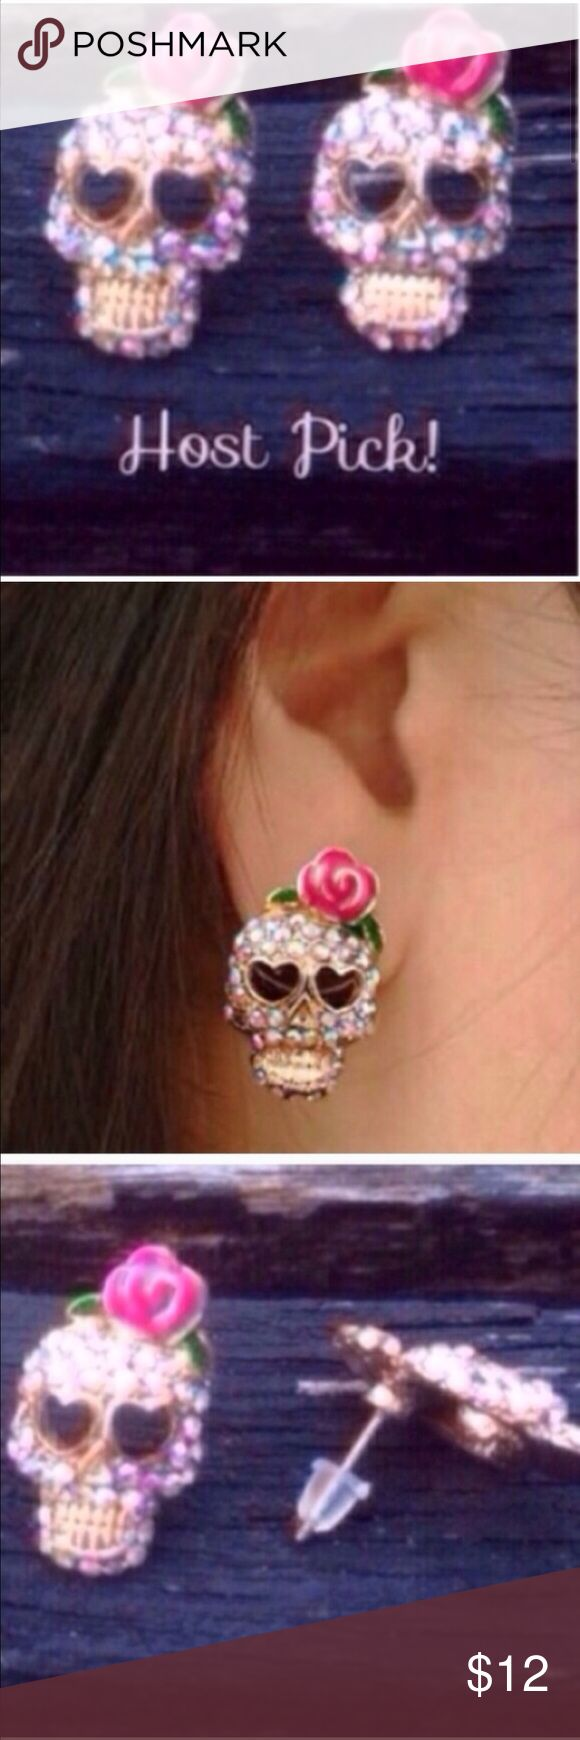 (A3) Skull Suds Cute and sparkly earrings. New in package. Jewelry Earrings